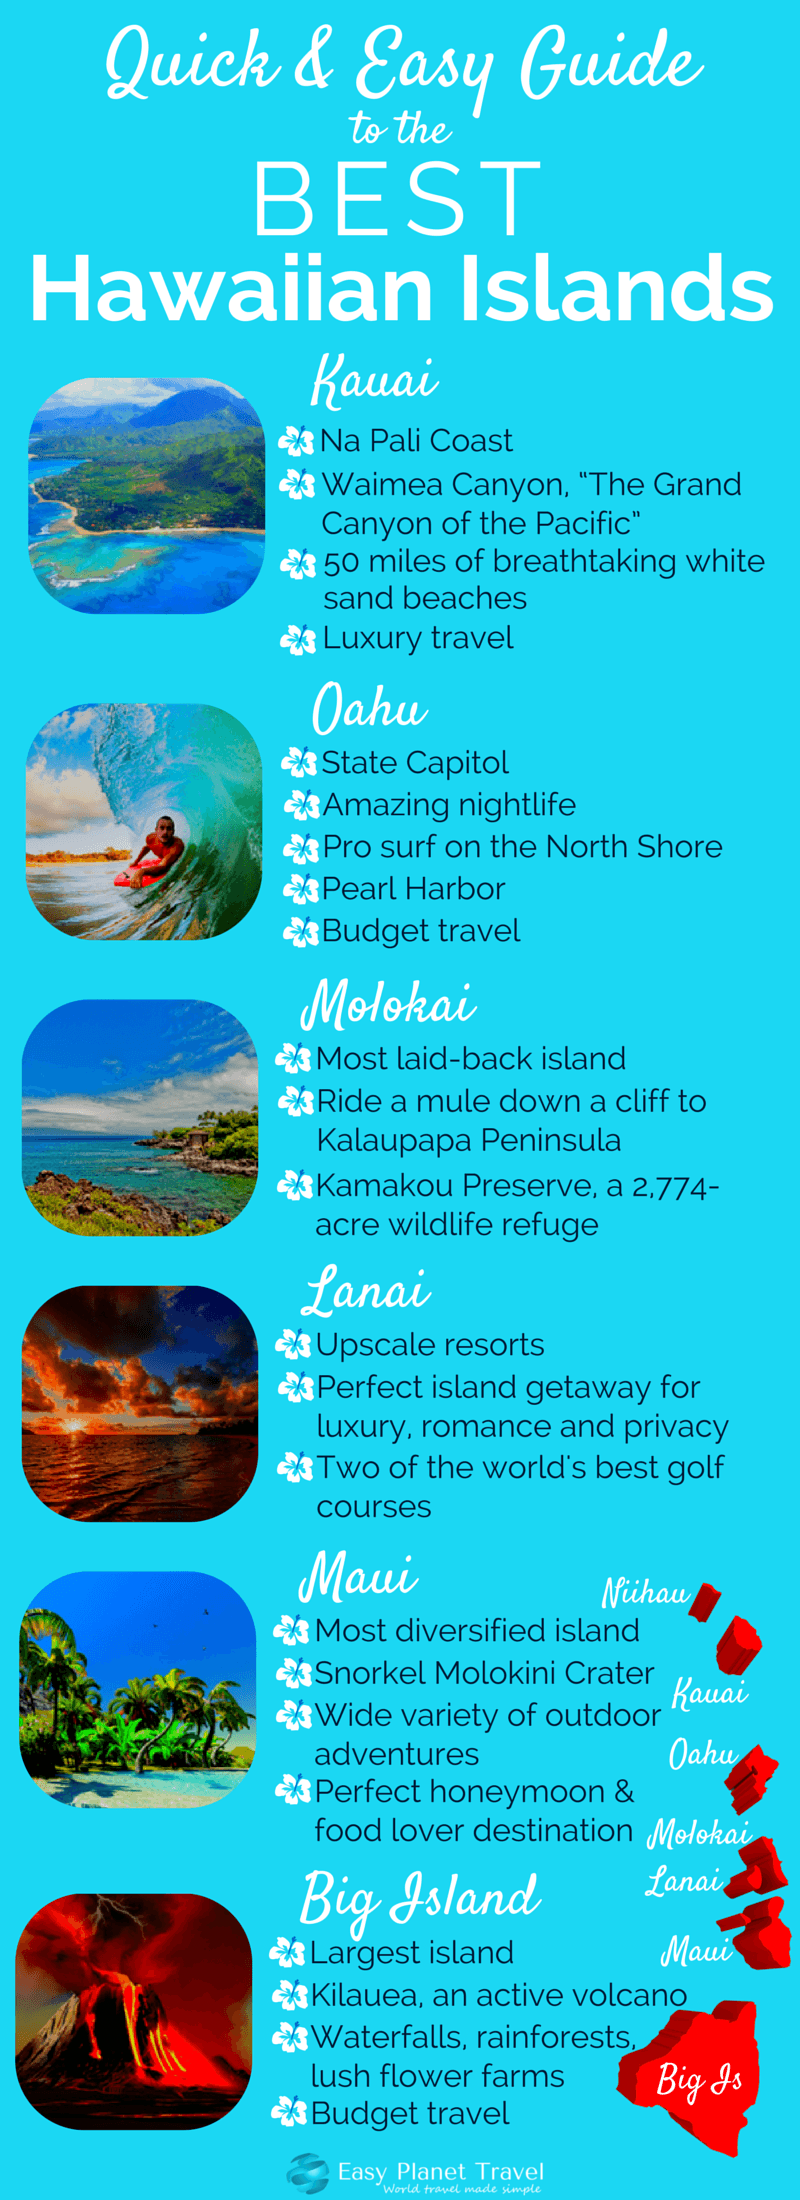 quick and easy guide to the best hawaiian islands - easy planet travel